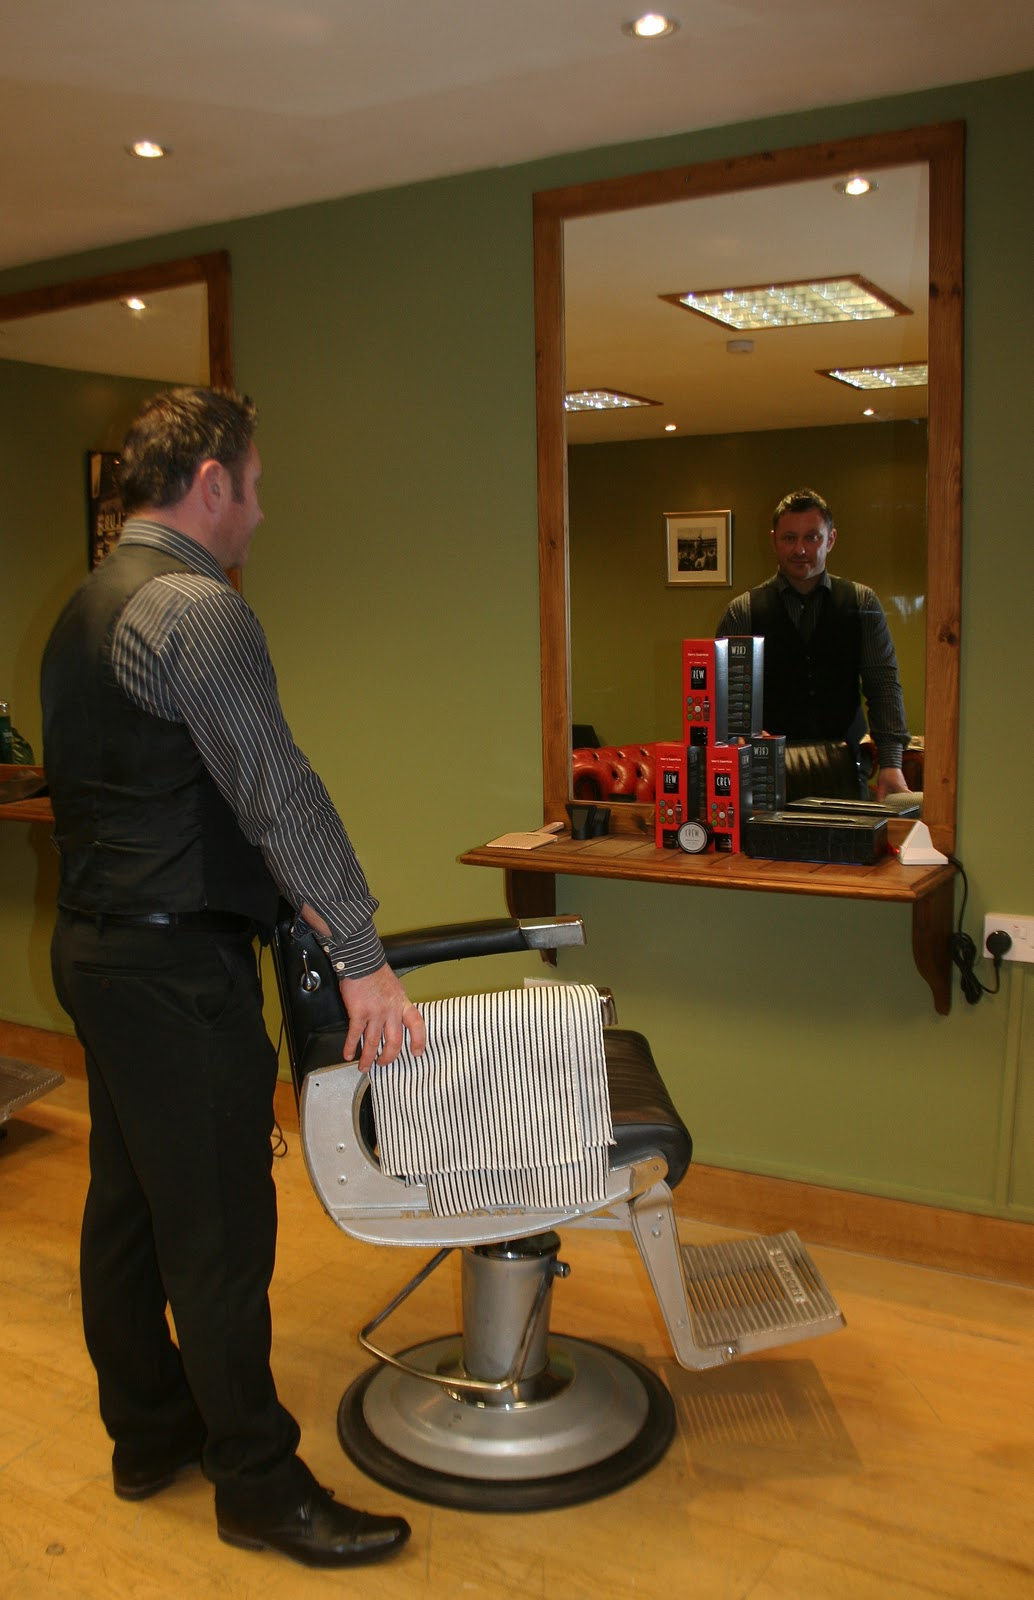 SHEPTON MALLET and Kilver Court shopping in Somerset: Minskys ... - Modern Barber Shop Interior